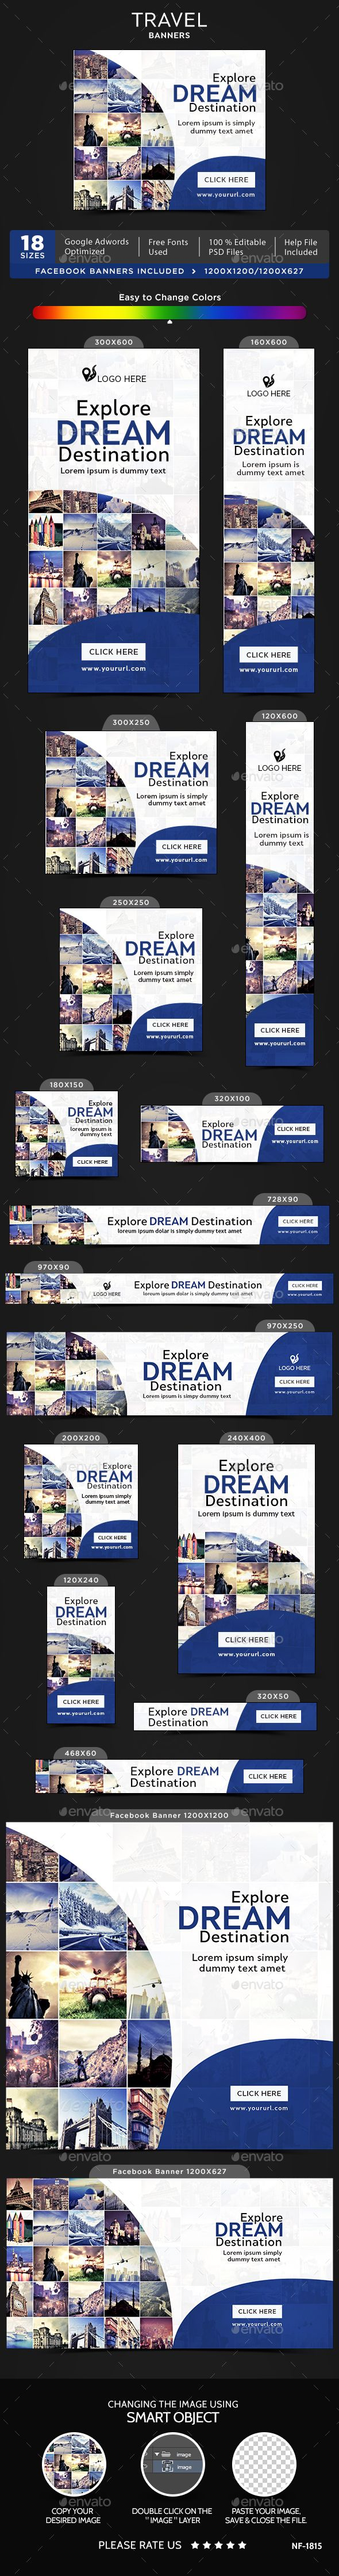 Travel Banners Best 255 banners images on